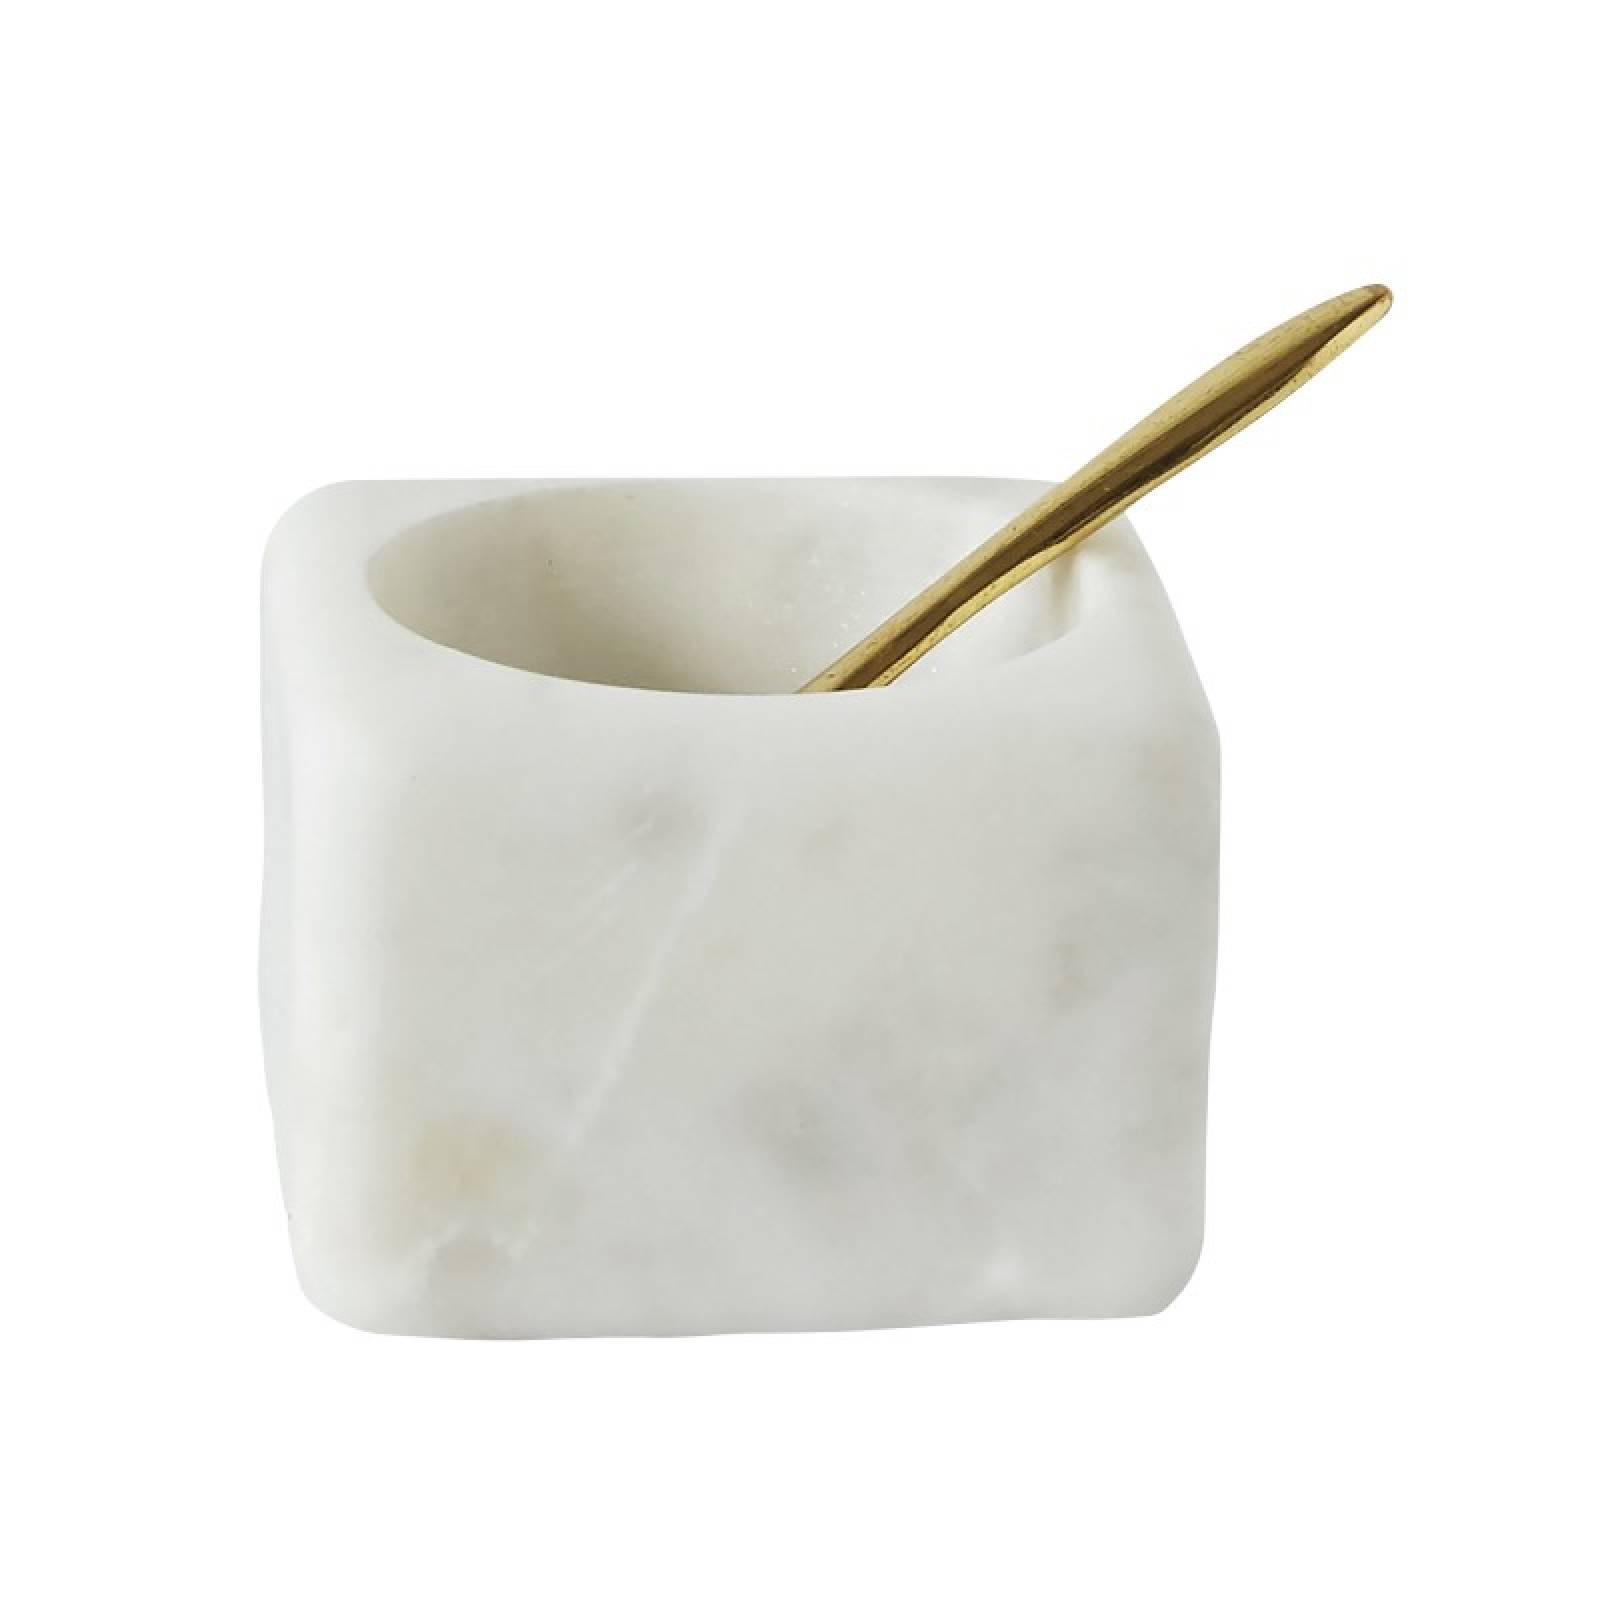 Square White Marble Salt Jar With Brass Spoon